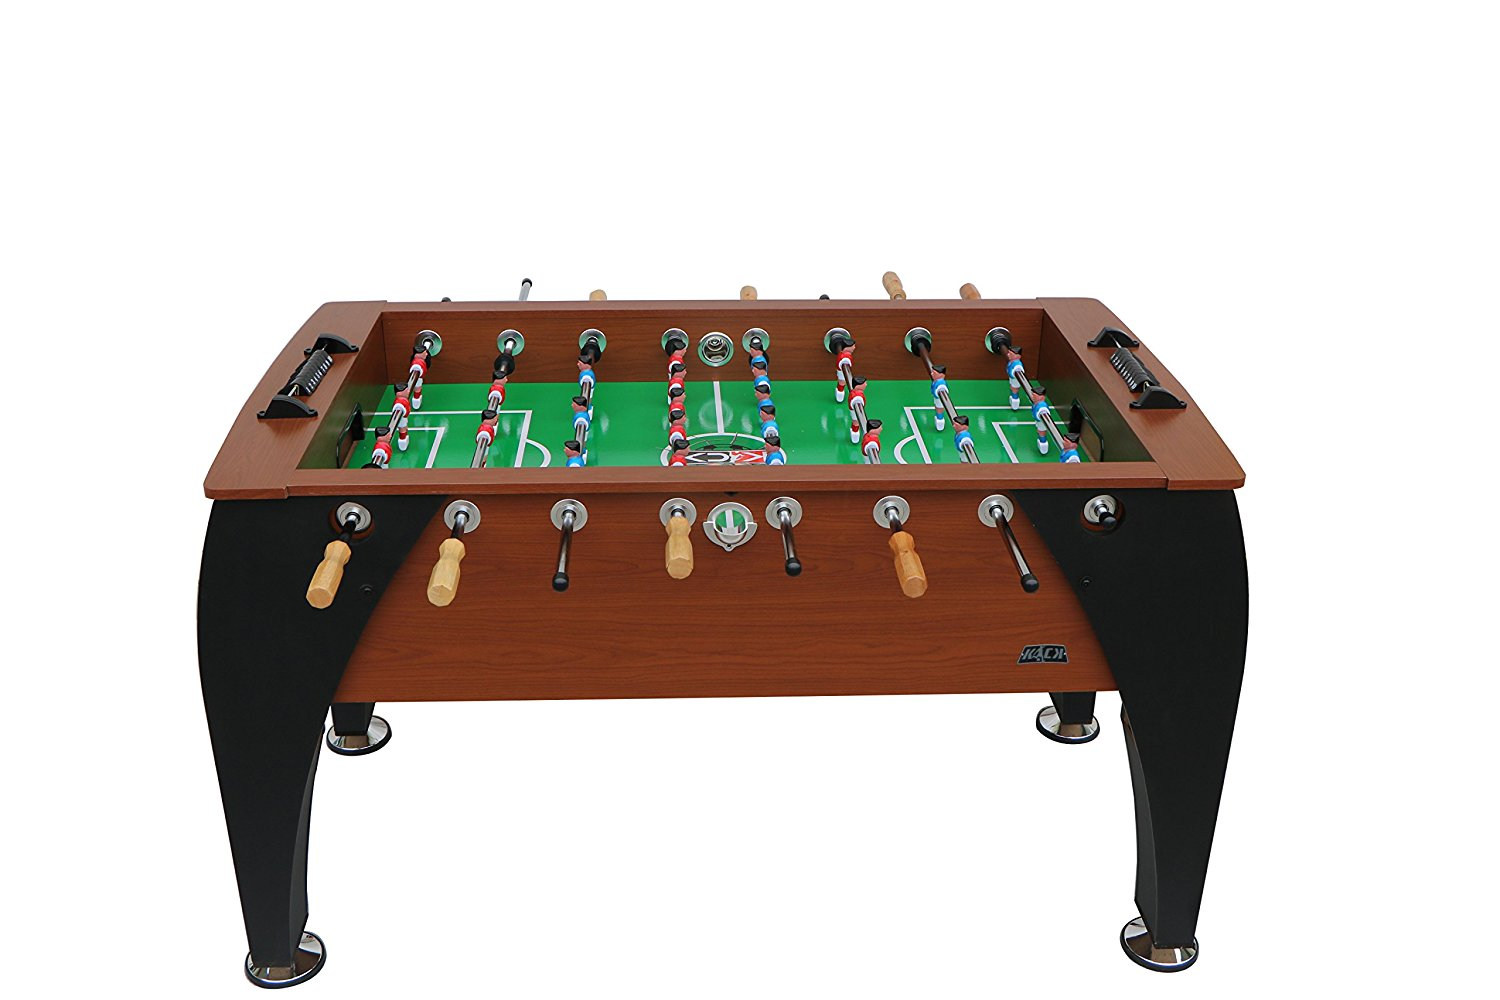 Kick Legend Foosball Table Review Refs Foosball Table Reviews - How much does a foosball table cost